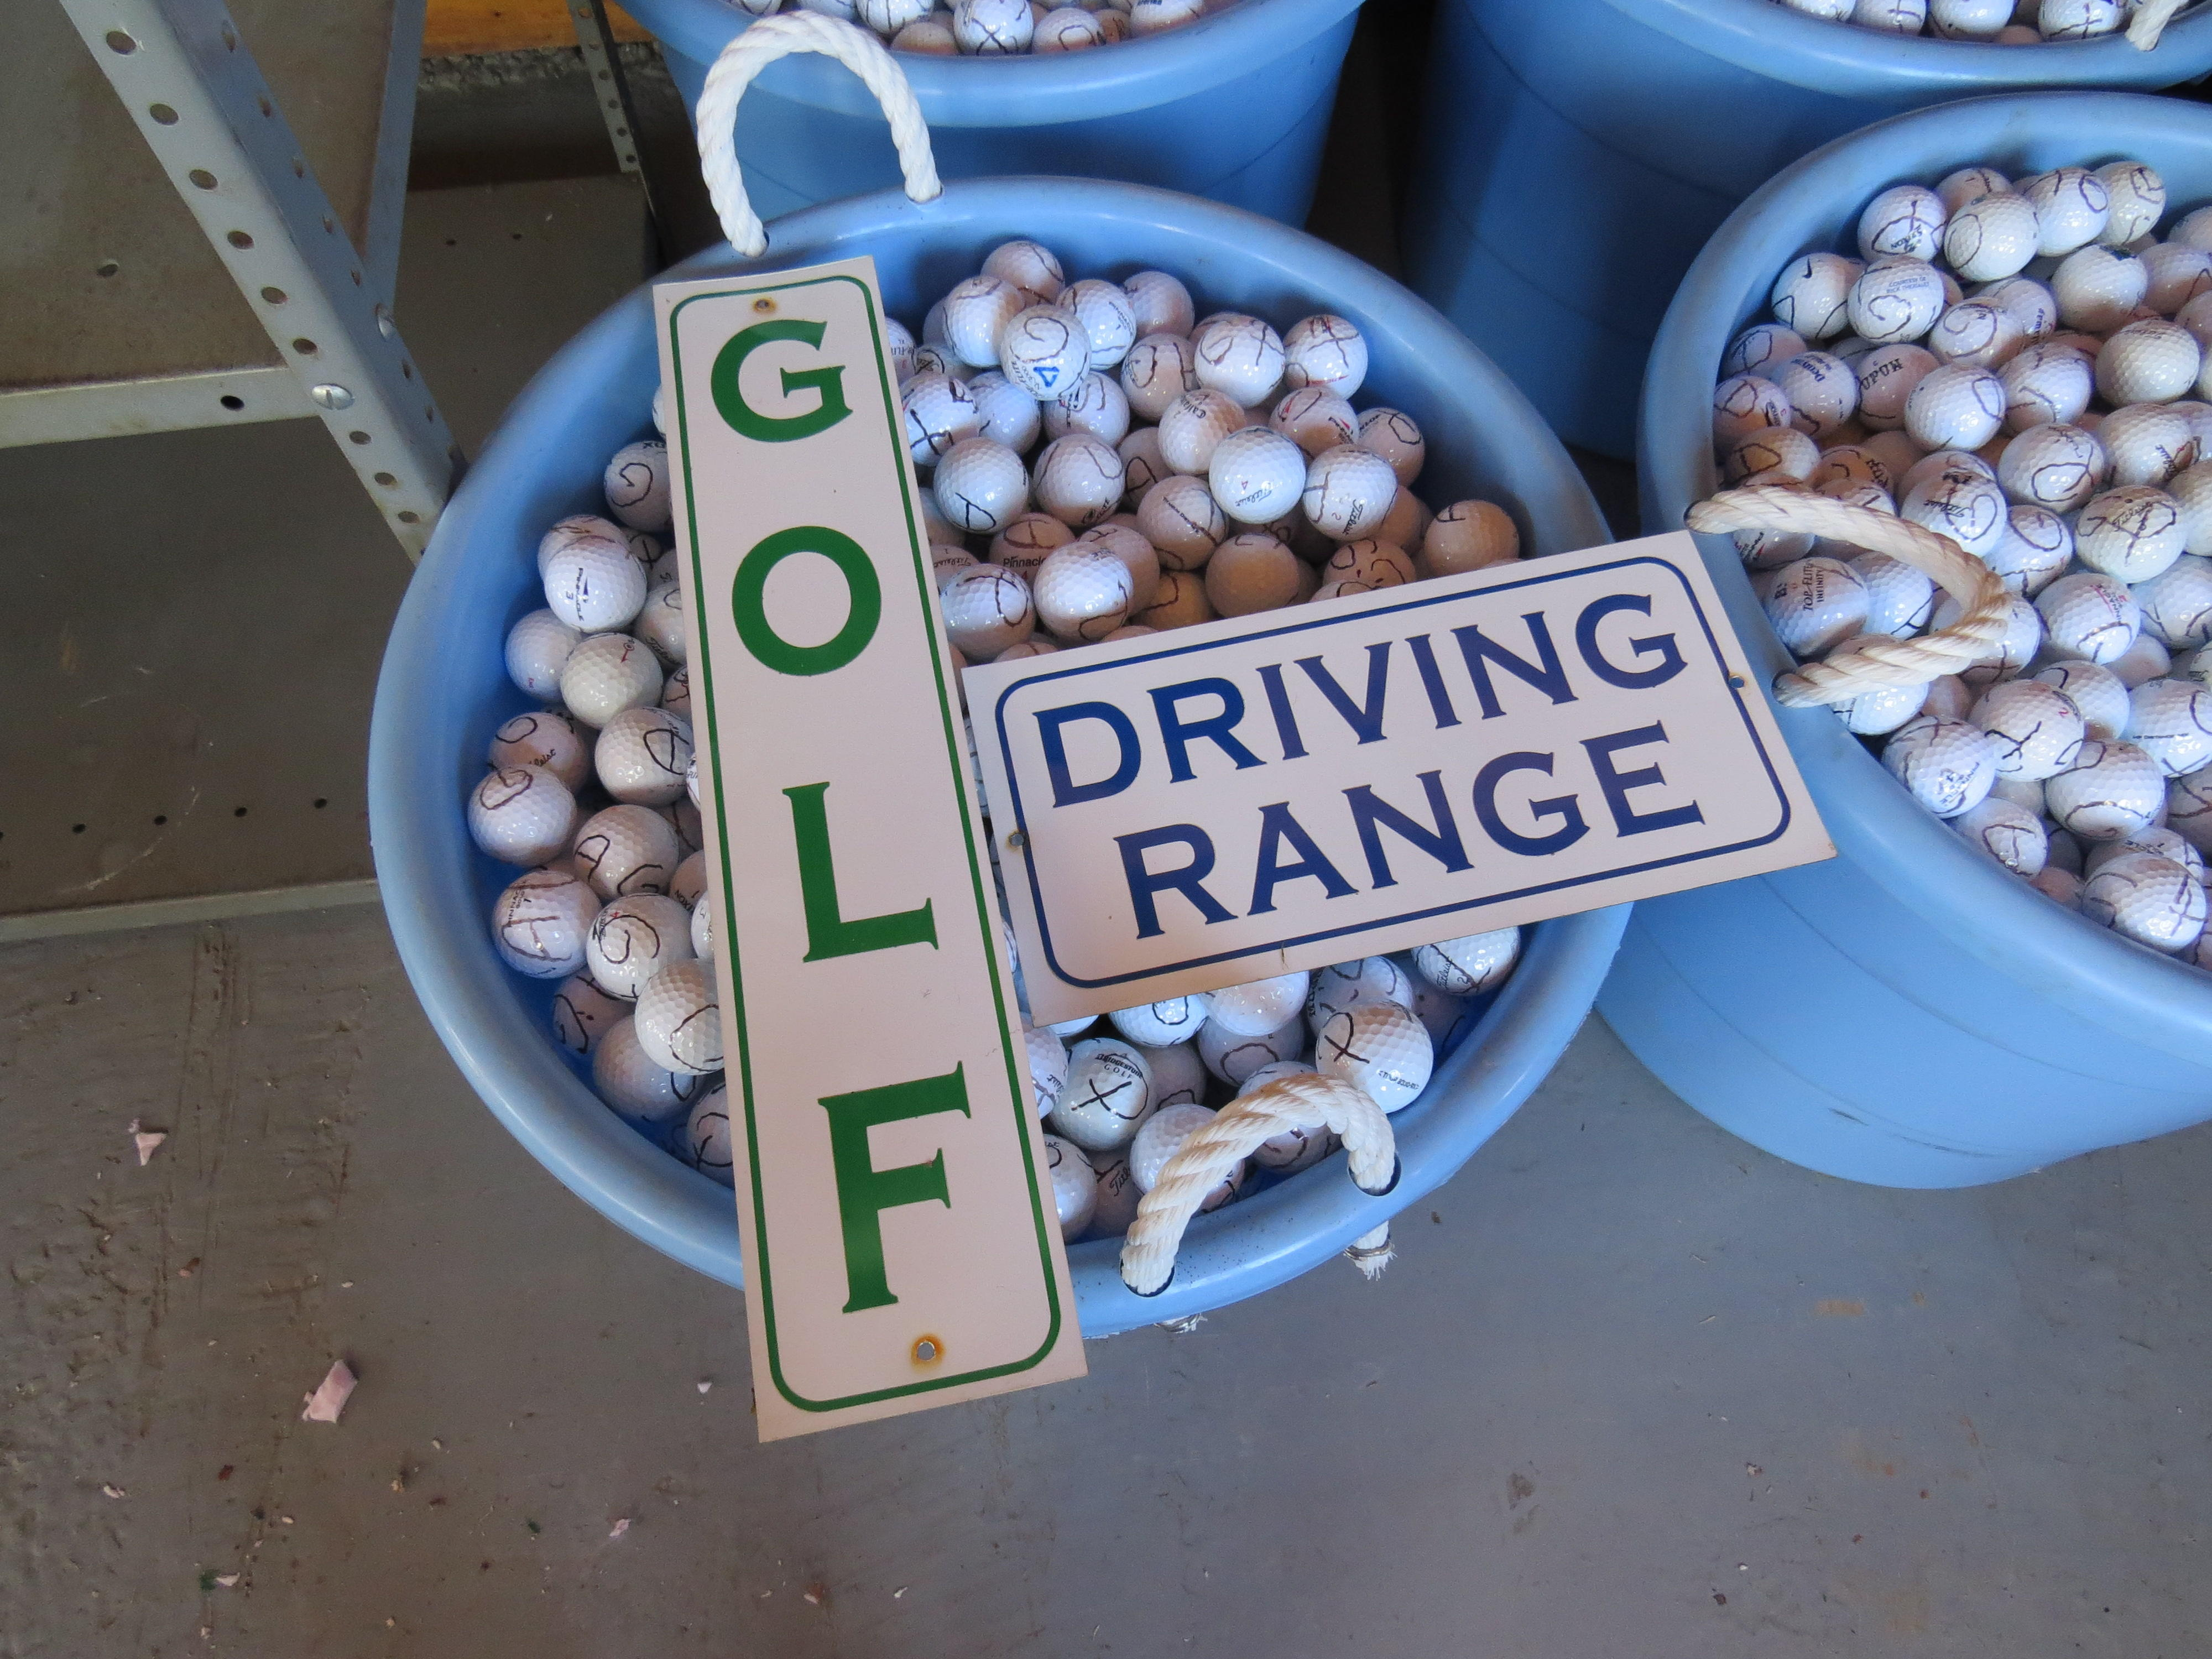 Timed Online Auction Golf Driving Range Equipment 98